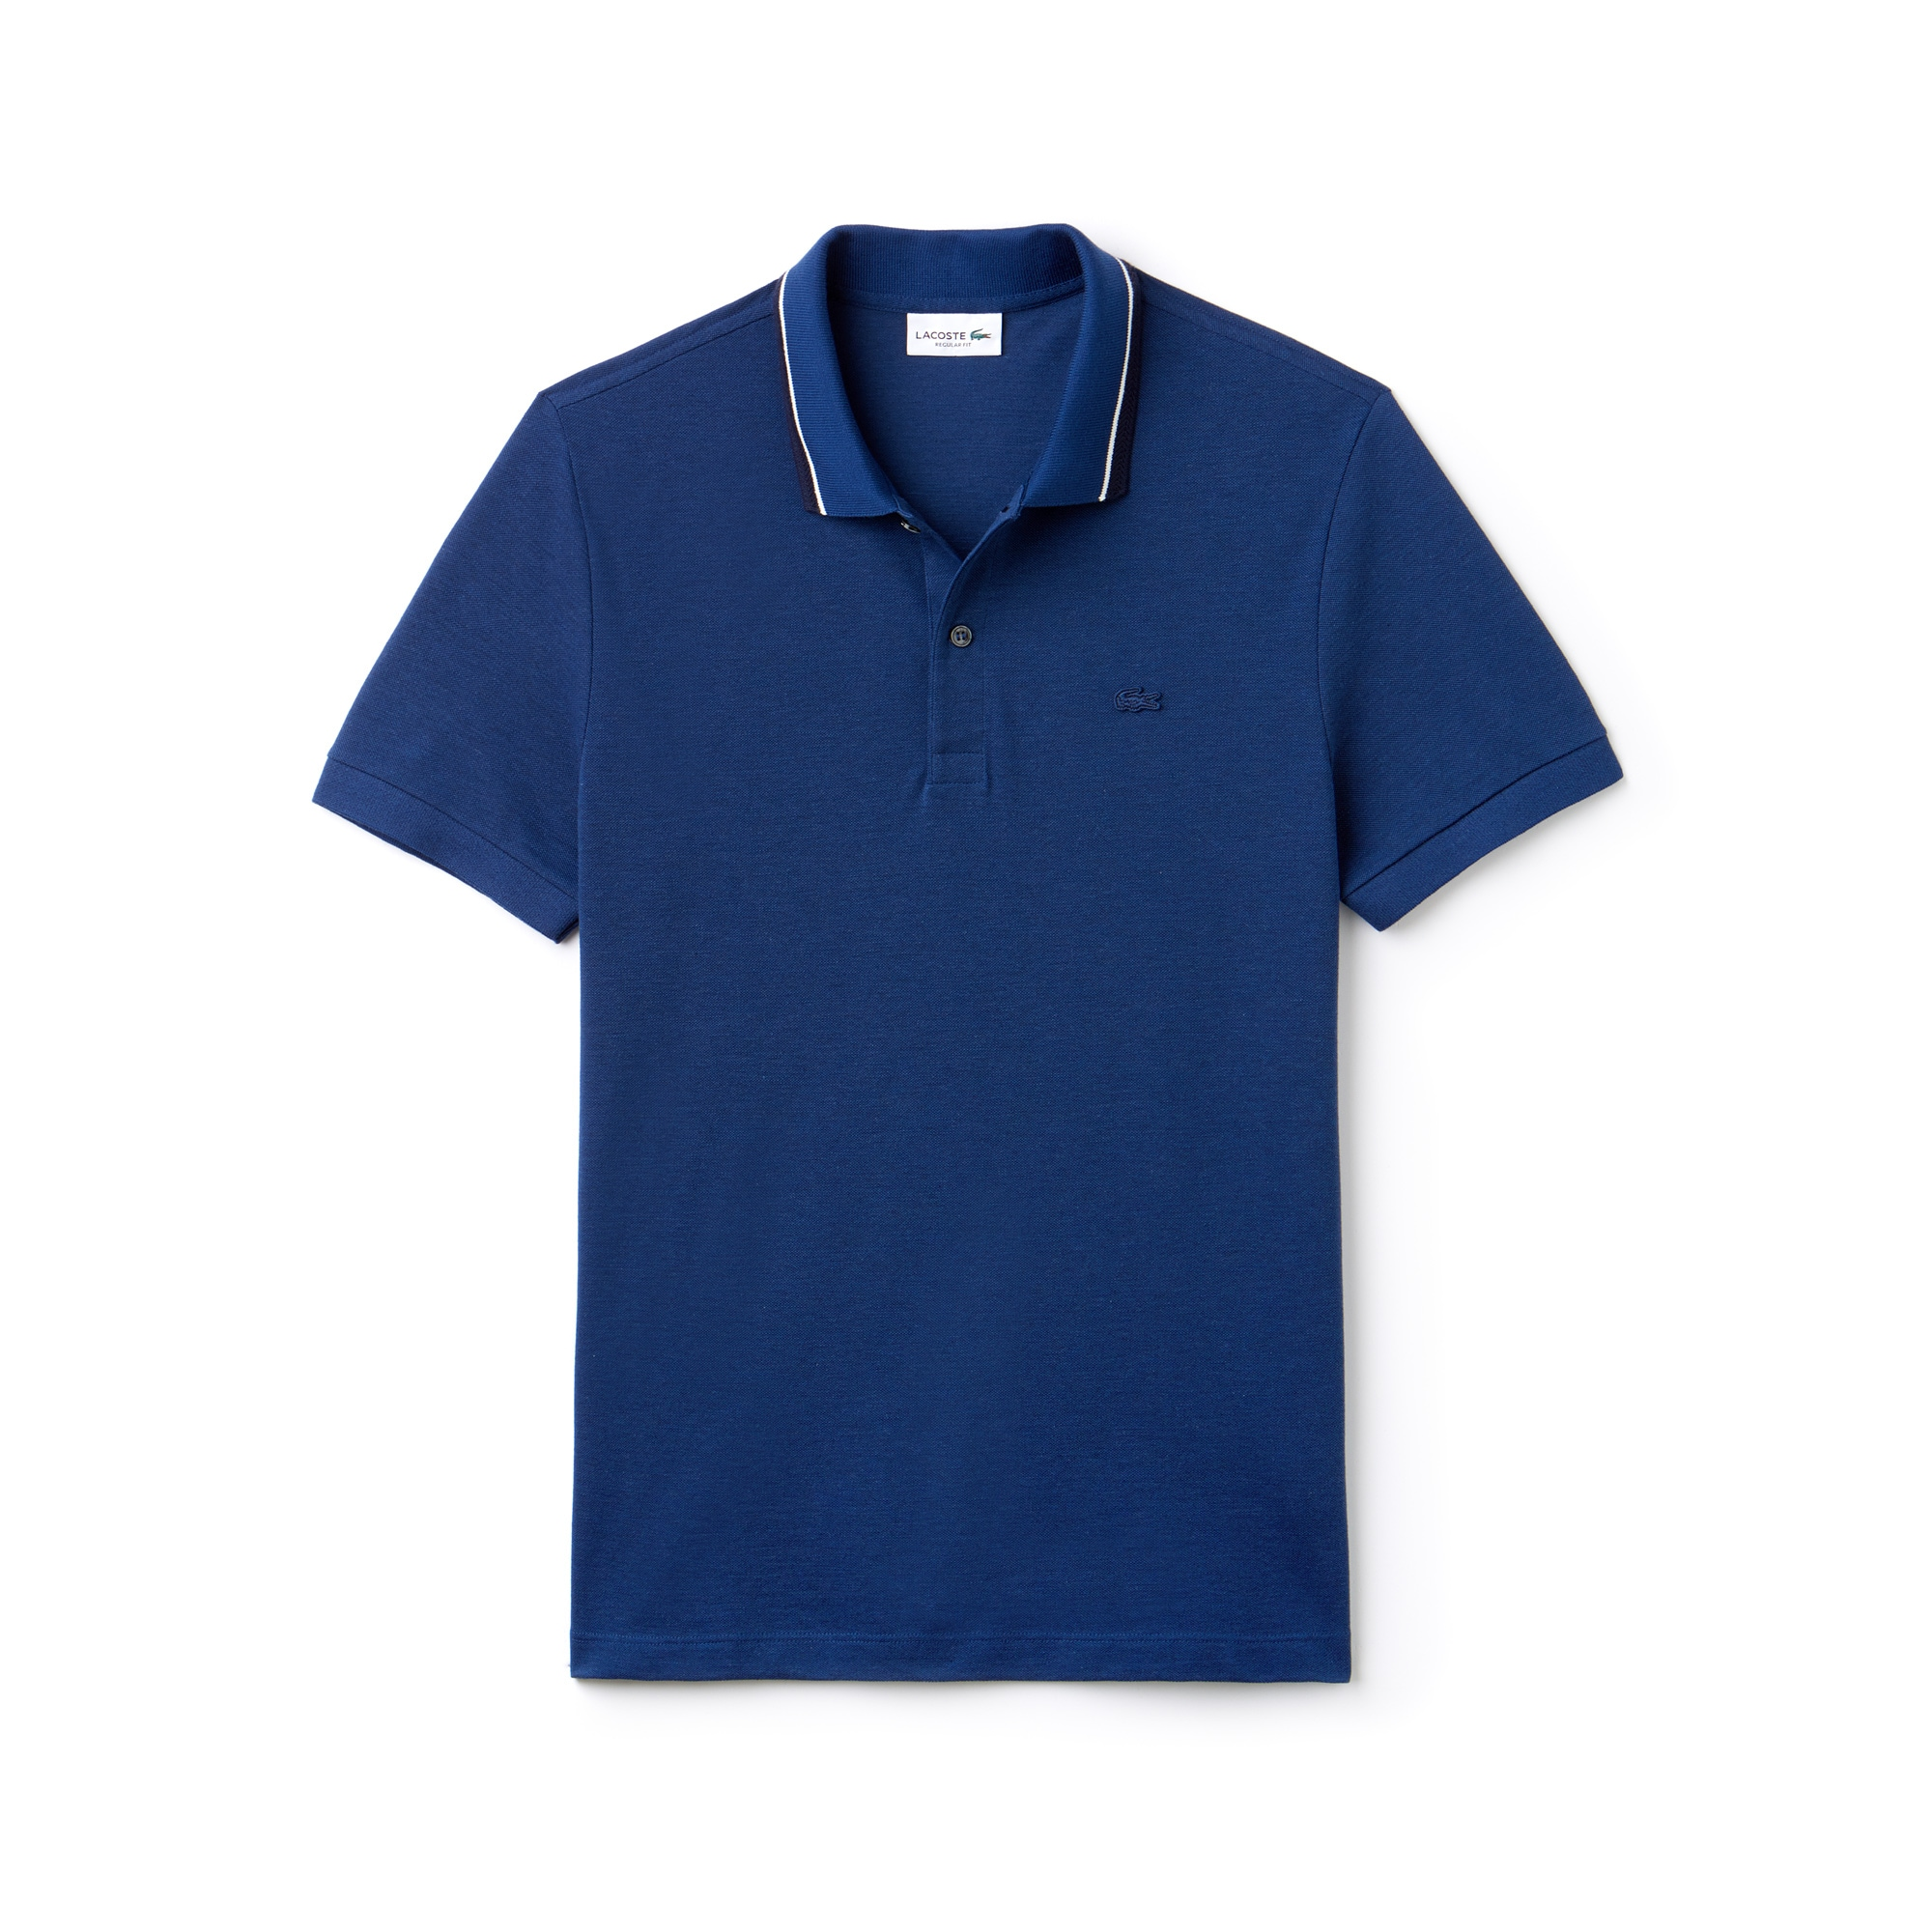 Men's Regular Fit Piped Neck Flamme Piqué Polo